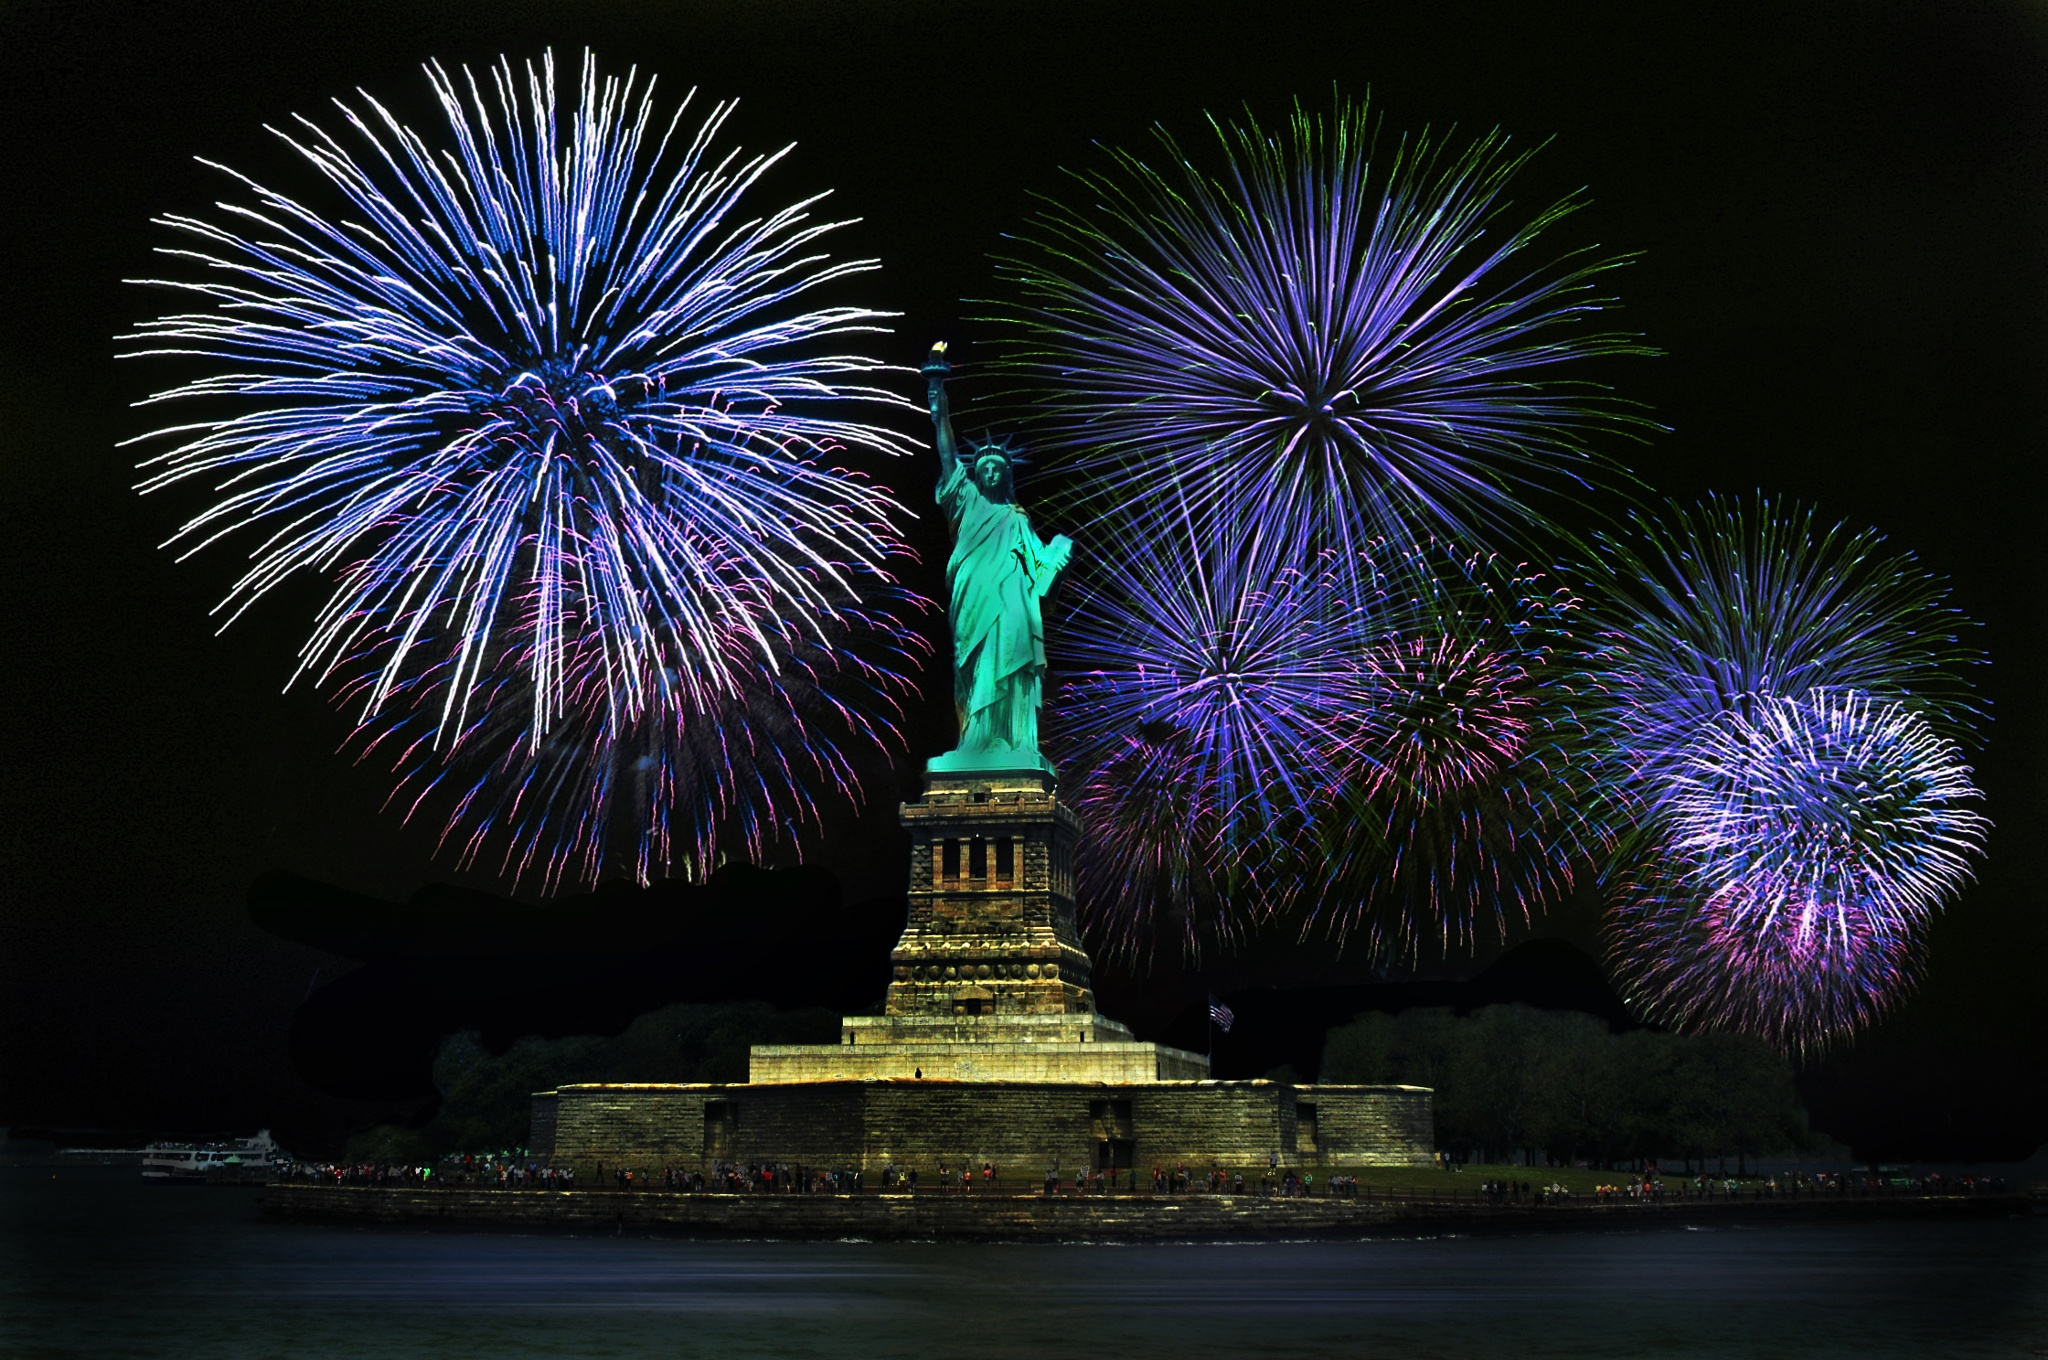 Statue of Liberty with fireworks by Germar